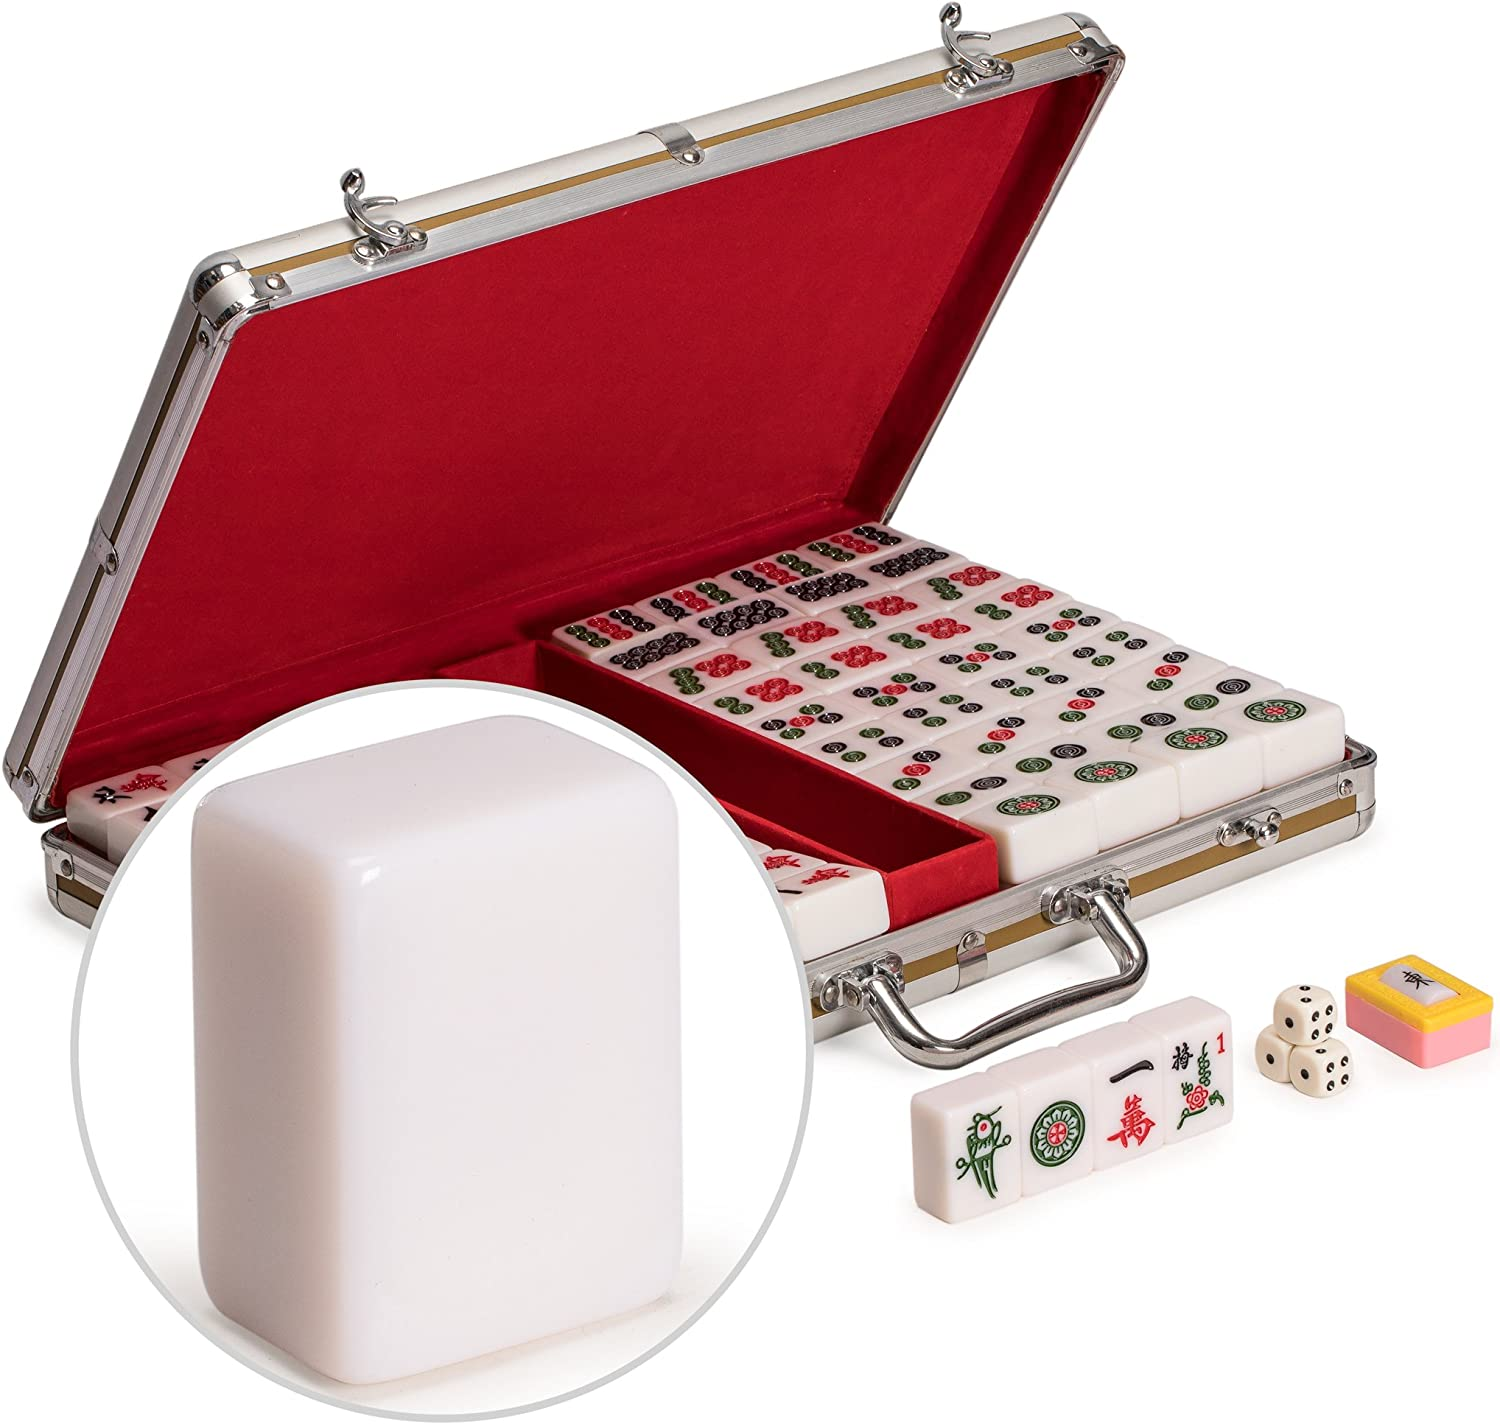 Yellow Mountain Imports Professional Chinese Mahjong Set with Aluminum Case - Large Tiles Size: 1.6 x 1.1 x 0.8 inches (40mm x 29mm x 20mm) - for Chinese Style Gameplay Only